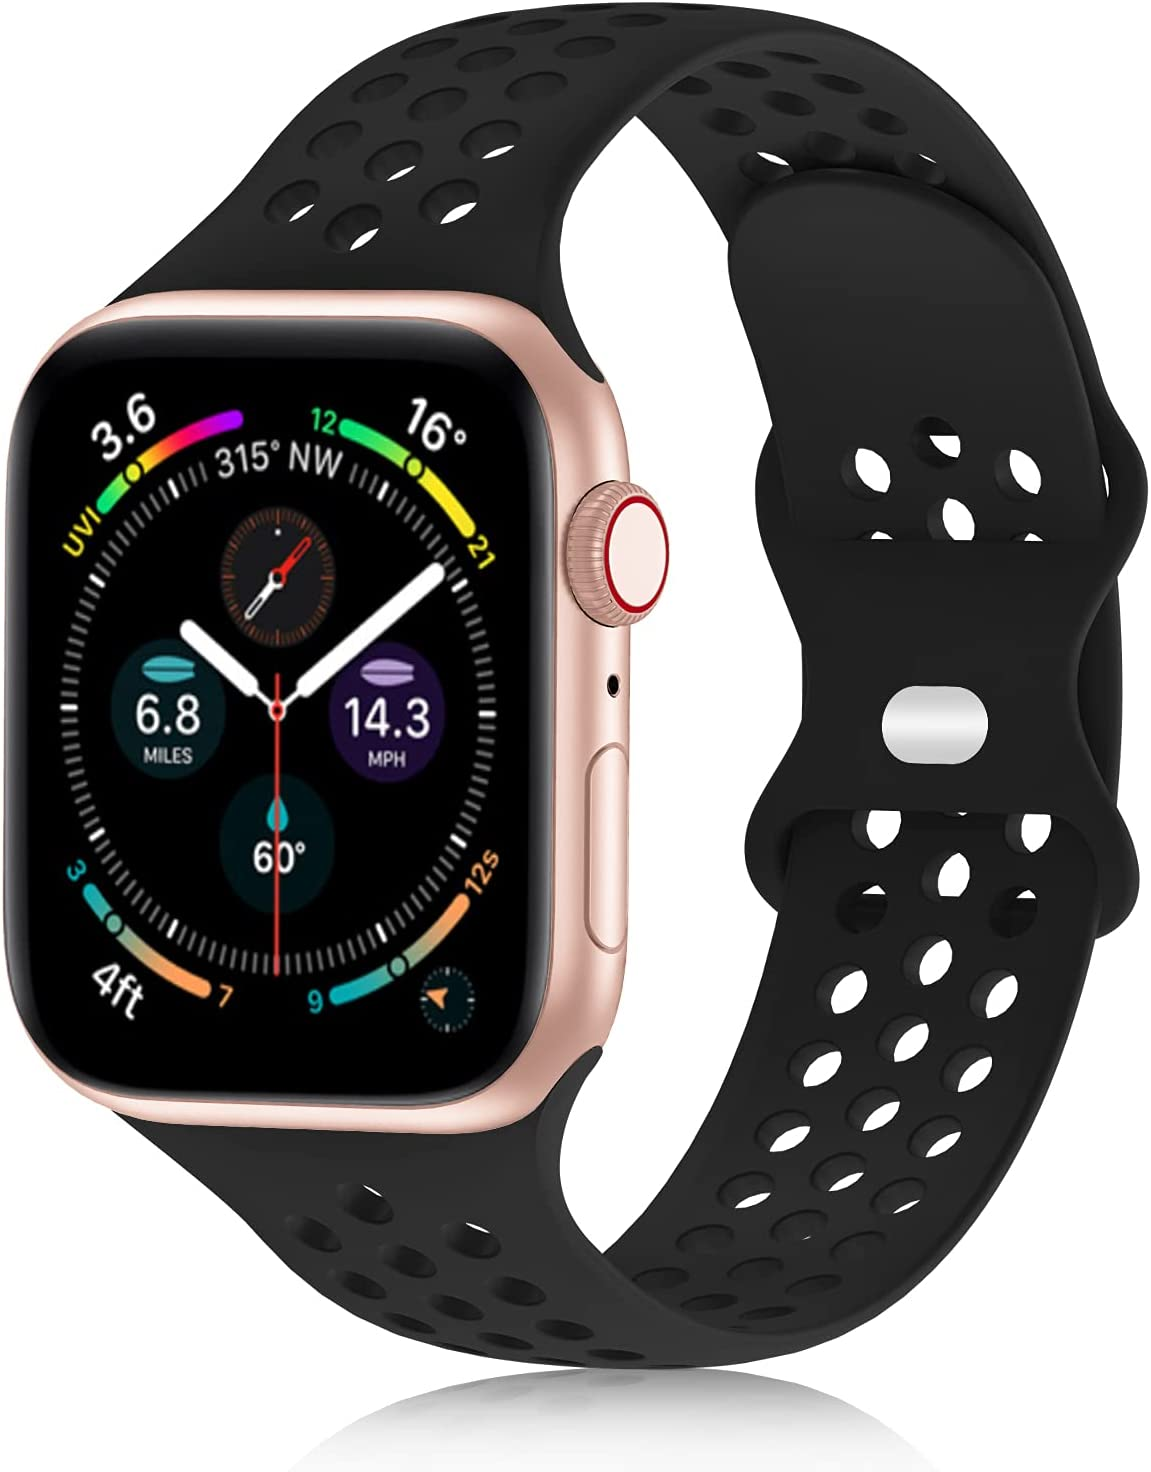 YAXIN Compatible with Apple Watch Band 38mm 40mm 42mm 44mm, Soft Silicone Sports Band iWatch Band Compatible for Apple Watch Series SE 6/5/4/3/2/1 Sport Edition, Replacement Strap for Women Men